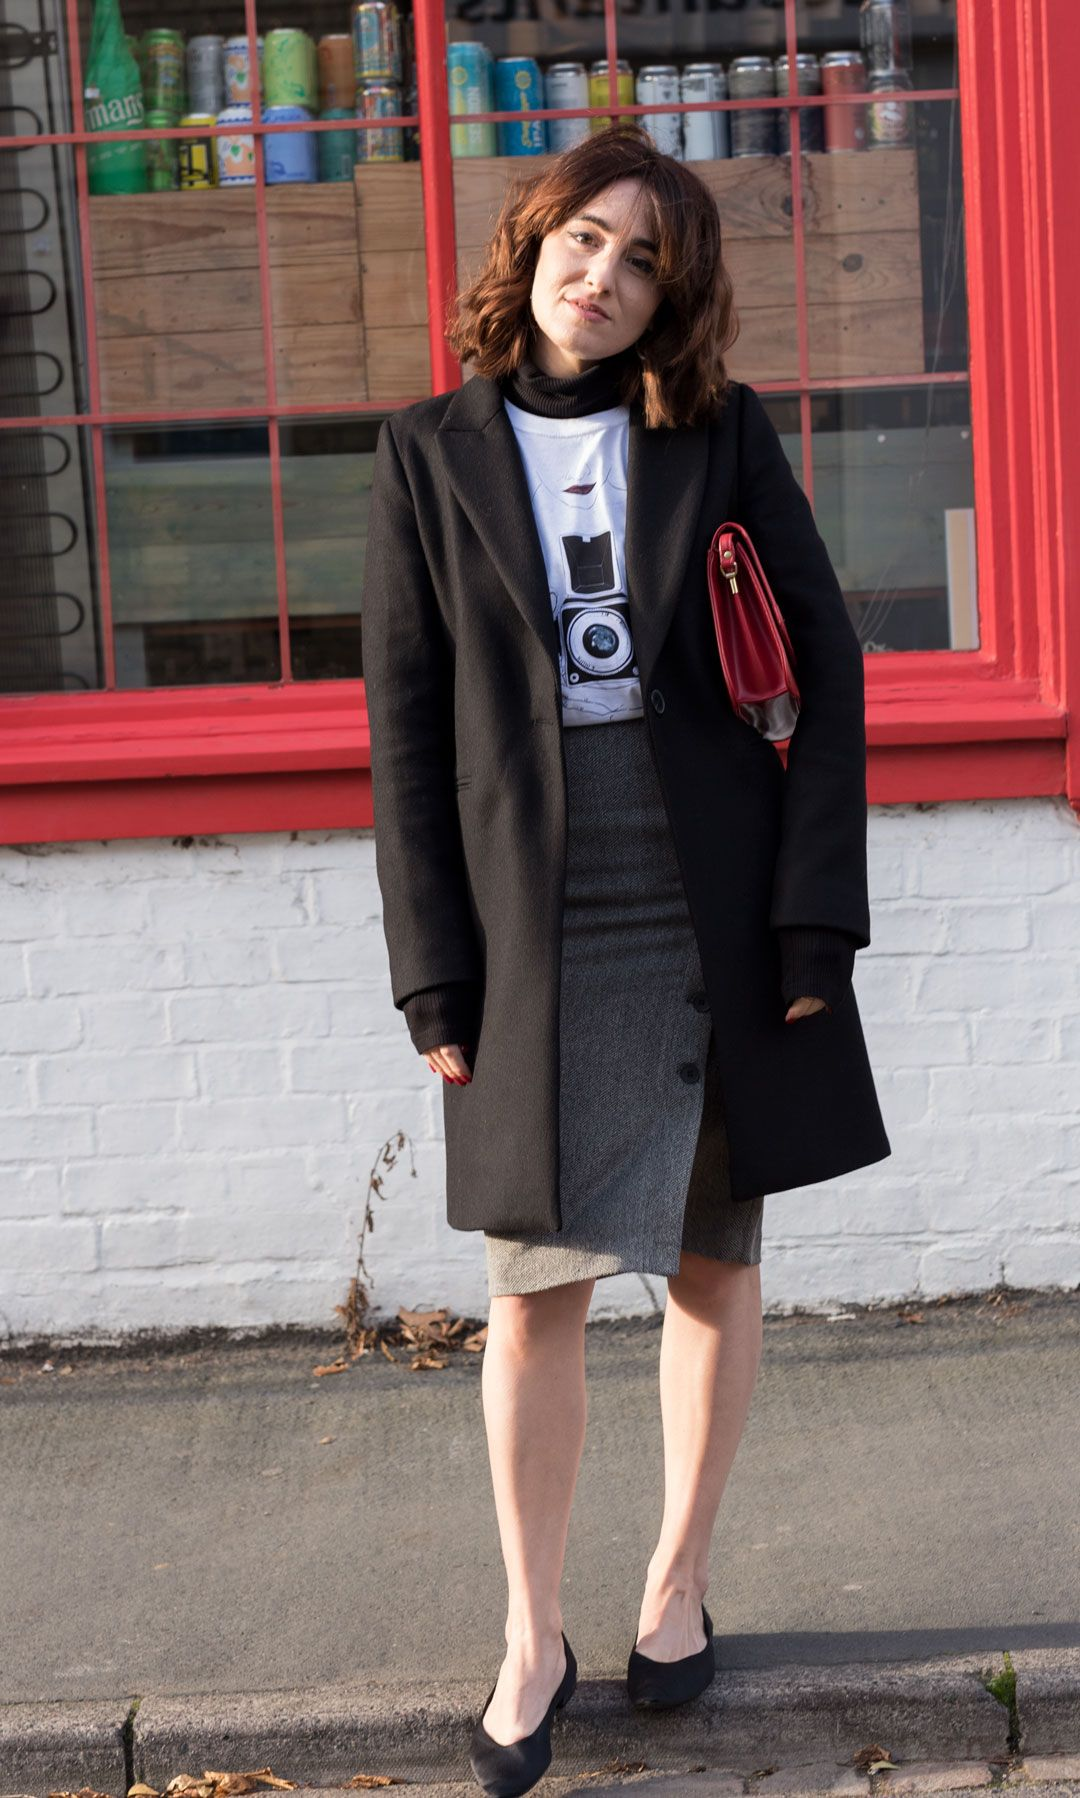 The feminist tee you need in your wardrobe   White printed tee   Teresa Pon La Mesa Drawings   #effortlesschic   #casualchic   #herringbone #pencilskirt   Classic black coat   Pointed flats   #winterfashion   #falllook   #autumnlook   Independent artists in fashion   #cottontshirt   How to wear a printed tee in a classy way   She talks Glam   Saida Antolin   #UKblogger   #kneelengthskirt   #classyoutfit   #parisianstyle   #whitetee   #T-shirt  white tee